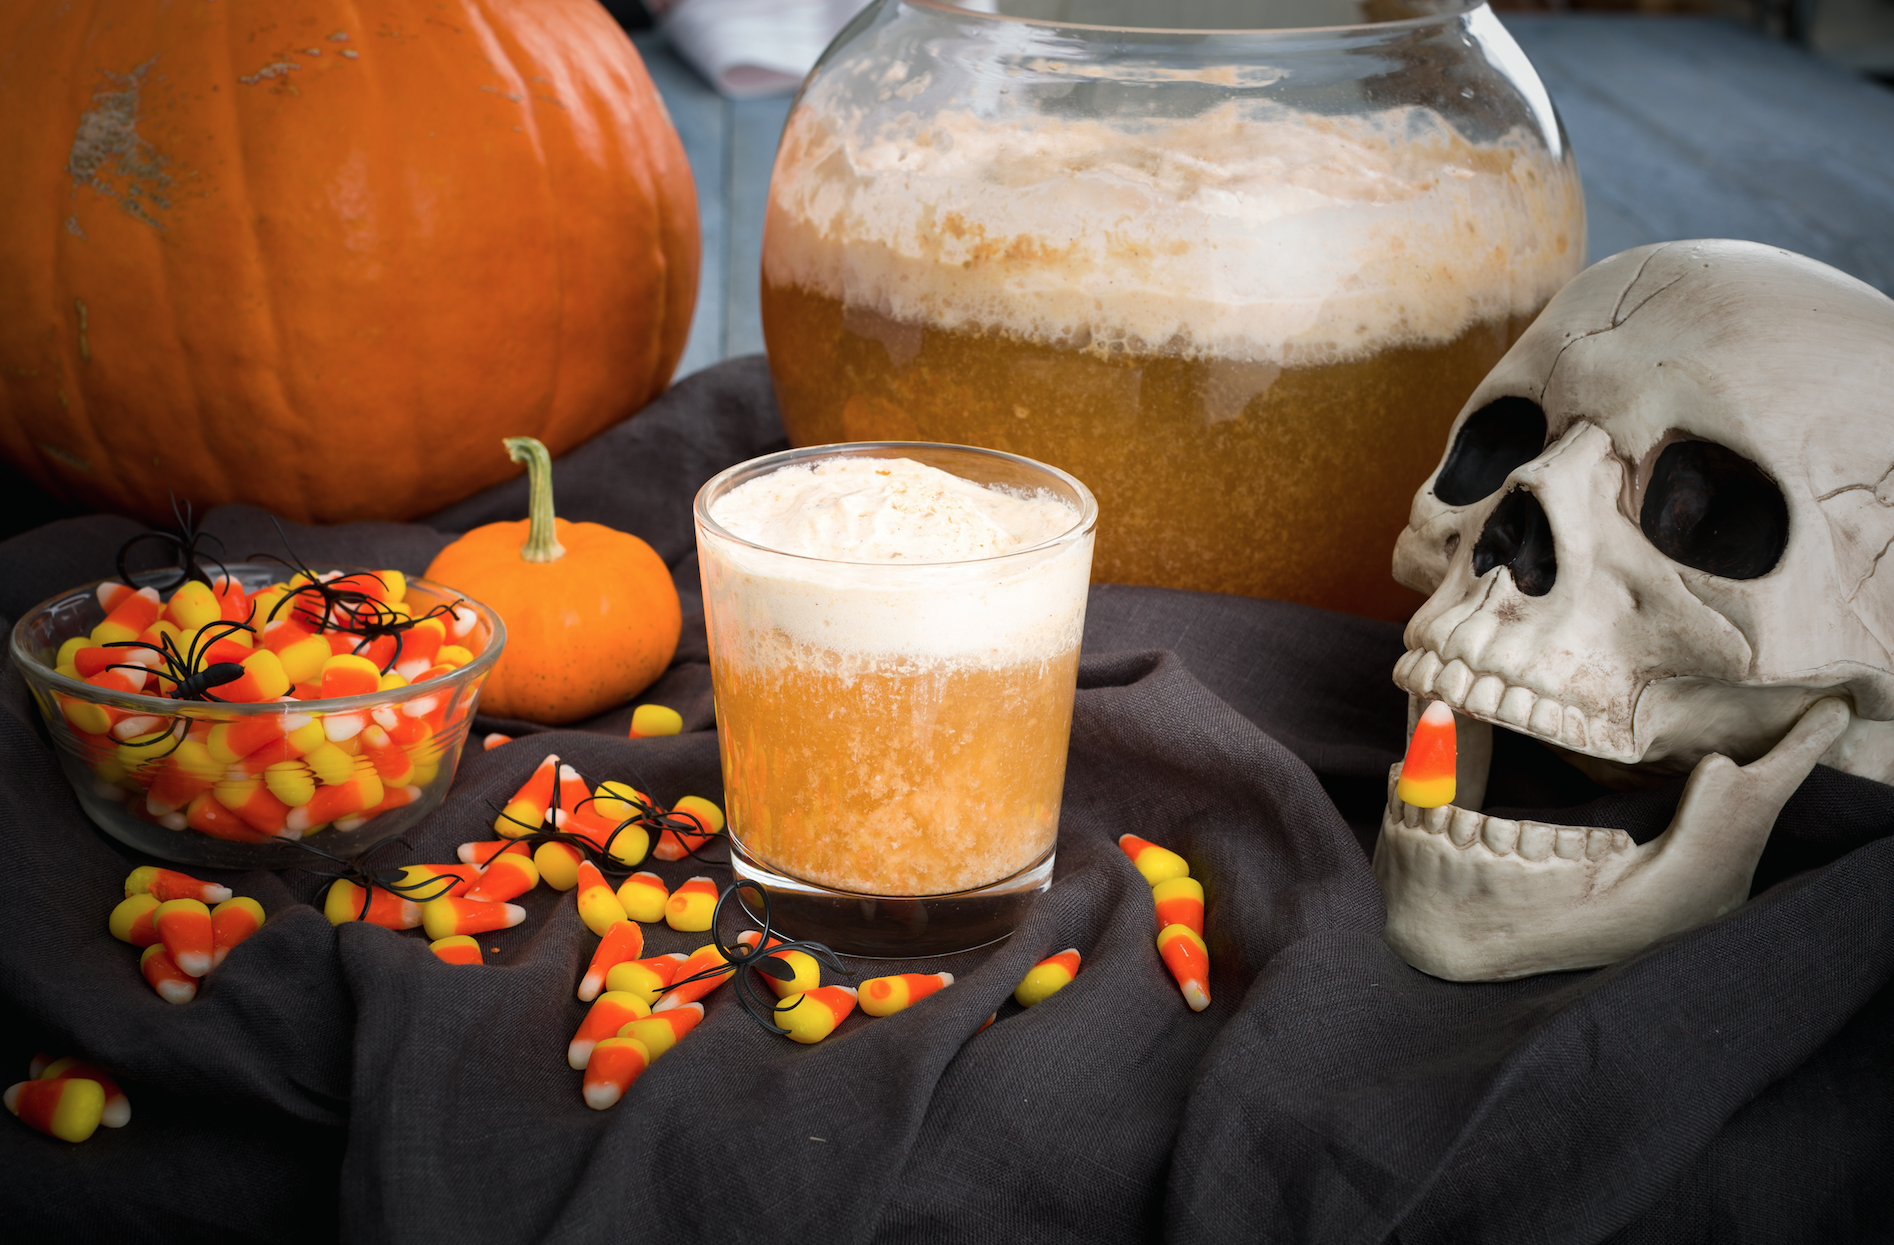 "<p>Is it really Halloween if your punch isn't spiked? These spooky drinks will add a festive touch to any Hallow's Eve party, whether you're in the mood for rum, vodka, tequila, wine, or beer. For more party tips, try our <a href=""https://www.delish.com/holiday-recipes/halloween/g2471/halloween-drink-recipes/"" rel=""nofollow noopener"" target=""_blank"" data-ylk=""slk:best Halloween cocktail recipes"" class=""link rapid-noclick-resp"">best Halloween cocktail recipes</a> and <a href=""https://www.delish.com/holiday-recipes/halloween/g2944/halloween-jello-shots/"" rel=""nofollow noopener"" target=""_blank"" data-ylk=""slk:spooky Jell-o shots"" class=""link rapid-noclick-resp"">spooky Jell-o shots</a>!</p>"